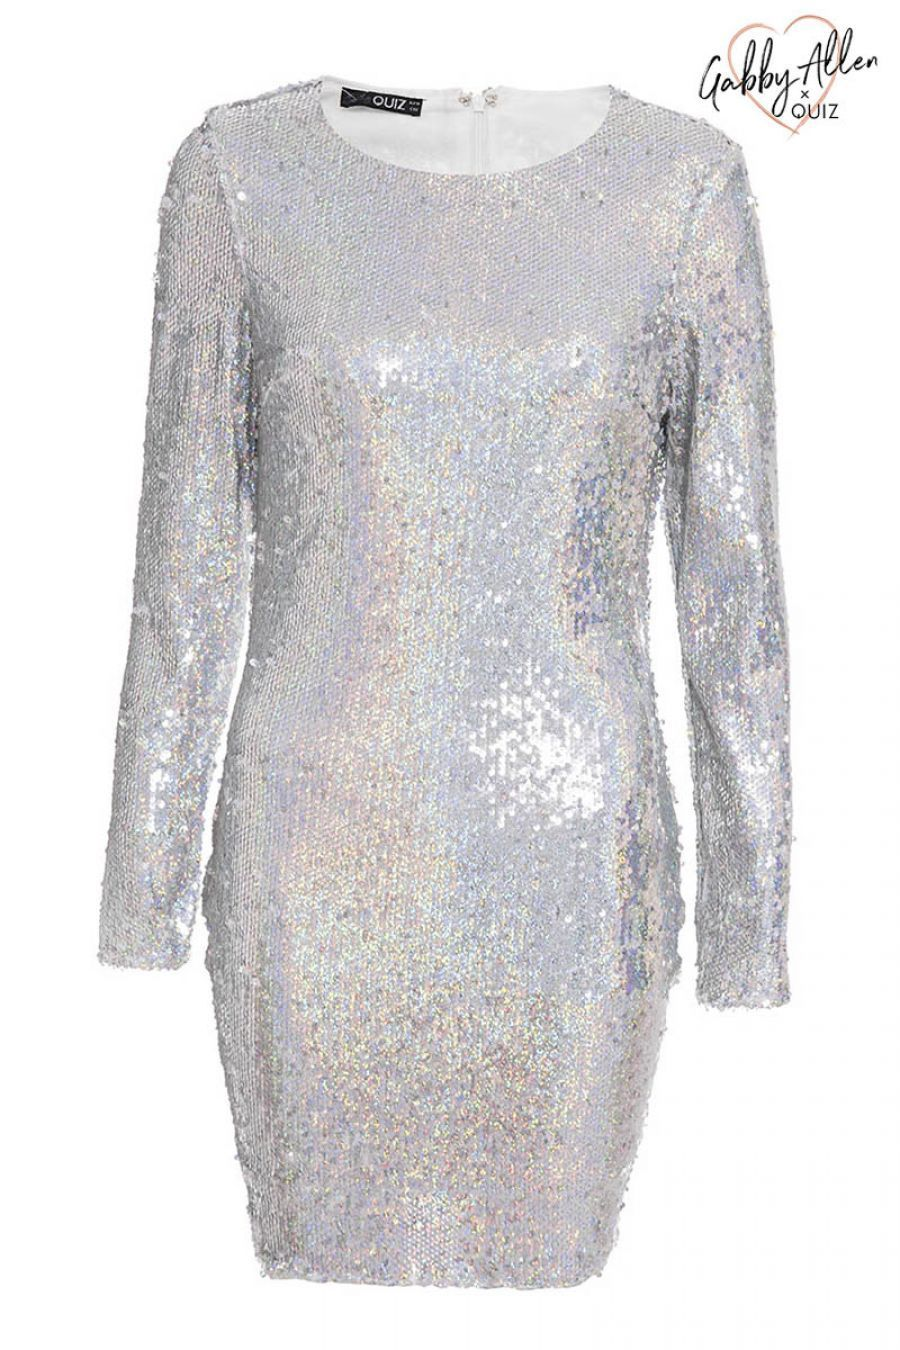 【海外限定】Quiz人気ドレス☆Gabby's Silver Hologram Stretch